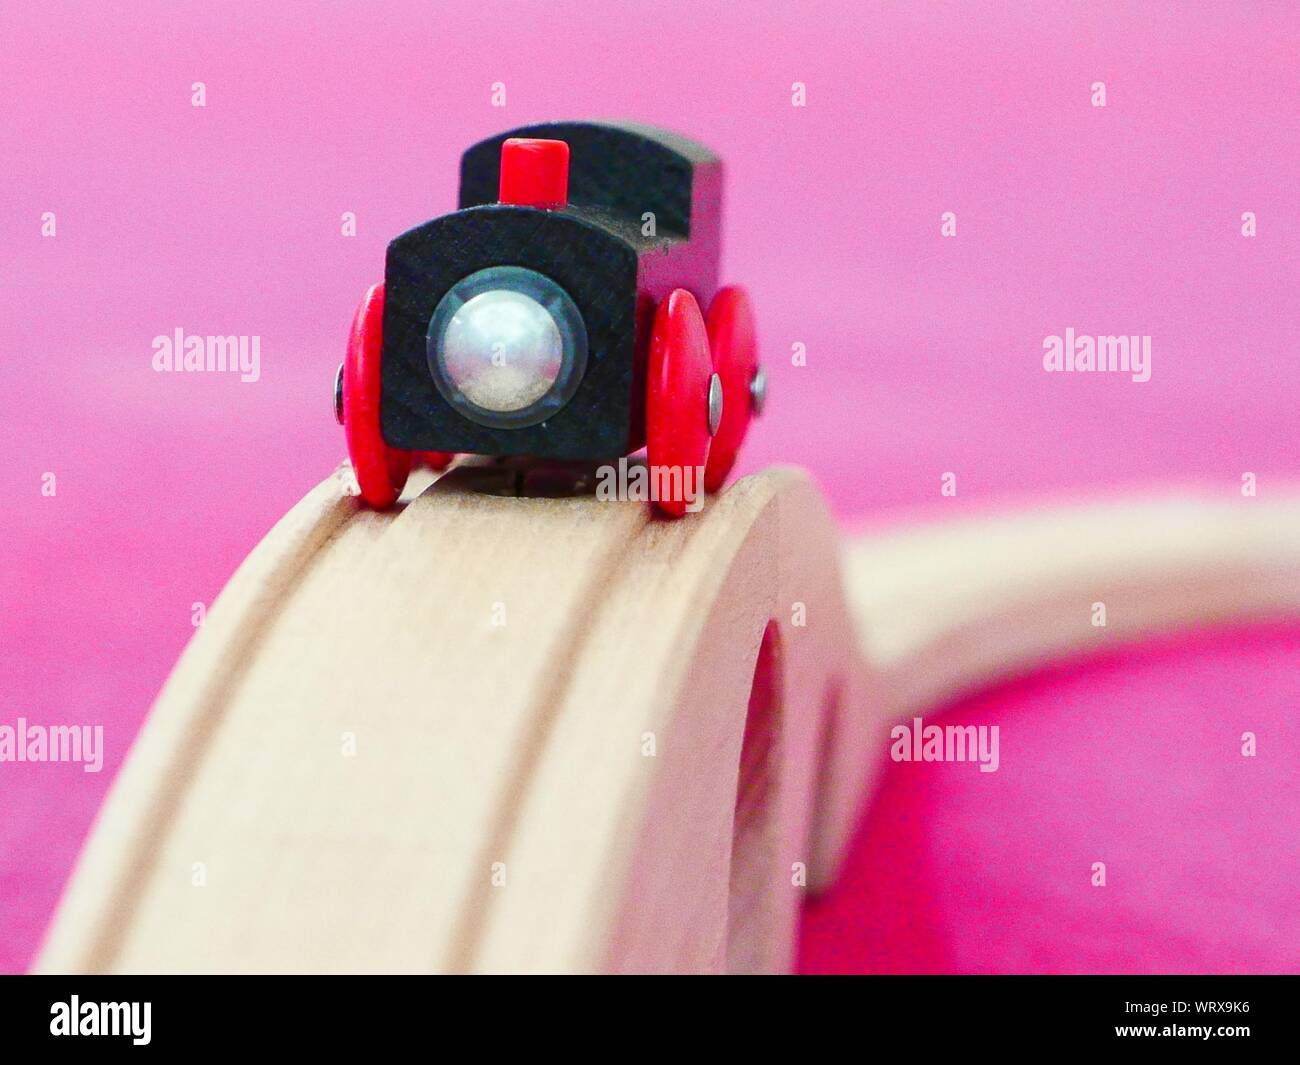 Toy Train On Wooden Railroad Track Stock Photo